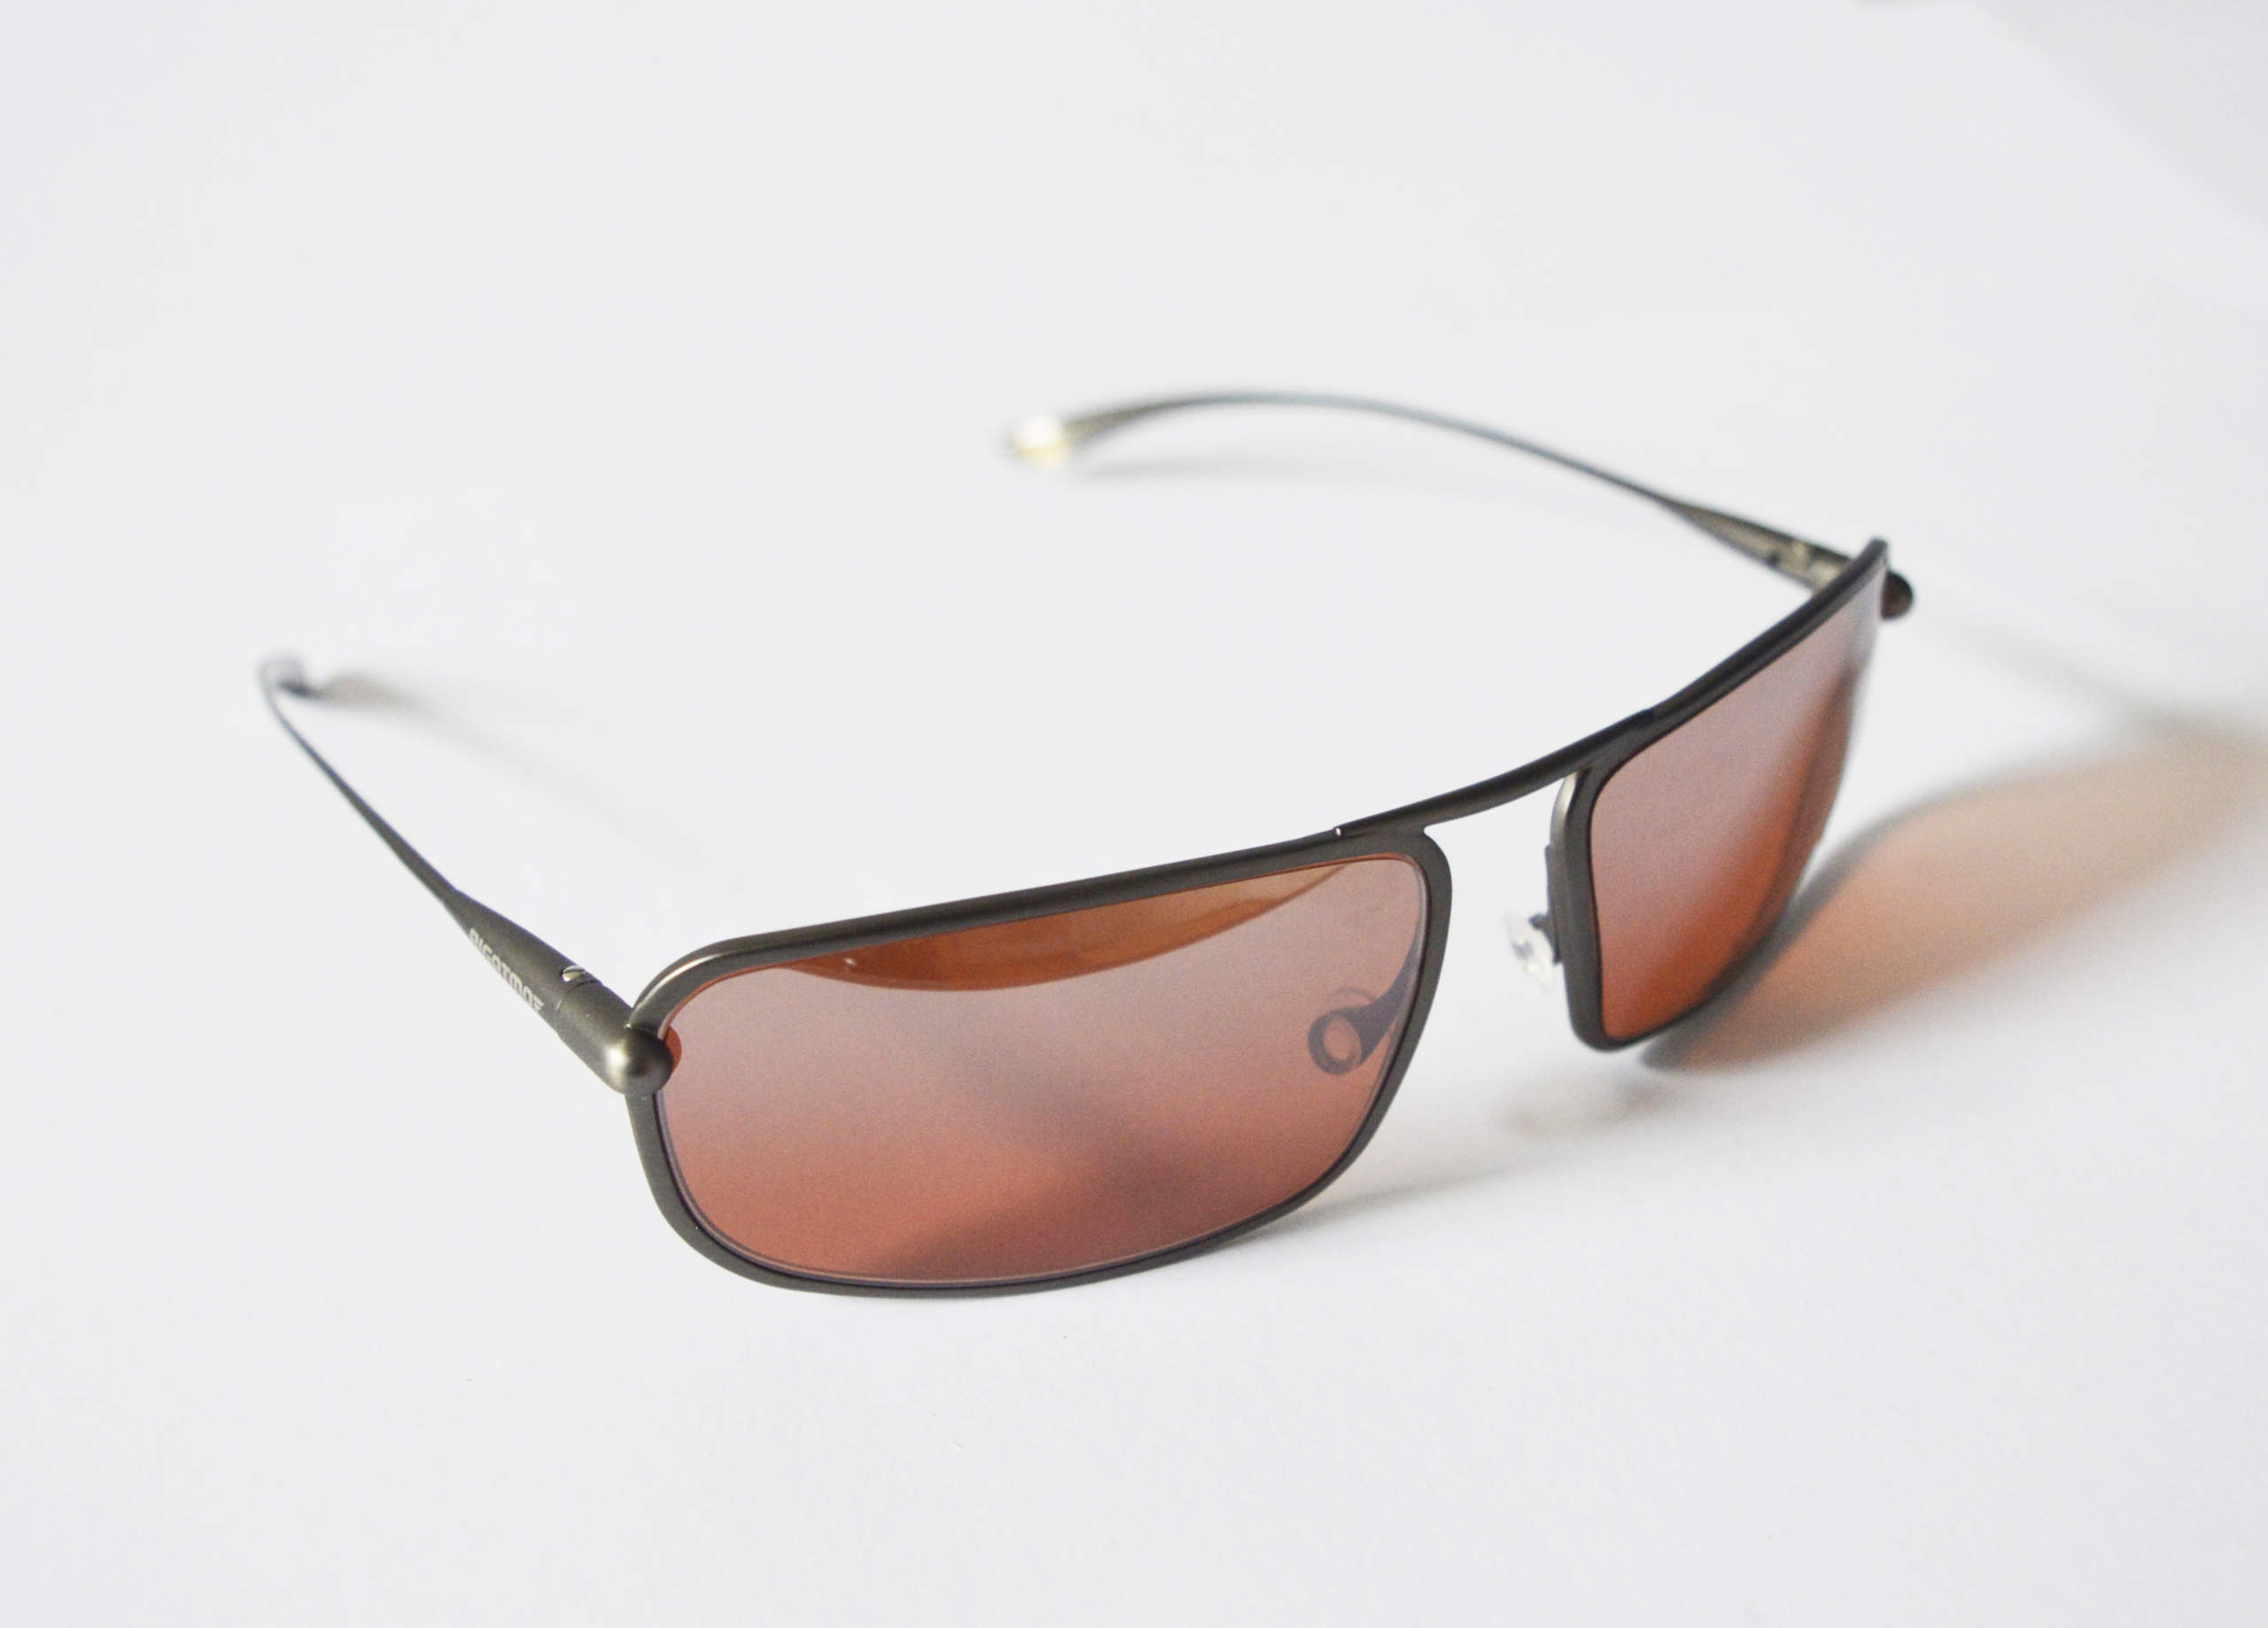 Meso Sunglasses, Gunmetal Titanium Frame and Alutra (Copper/Brown) Photochromic Lenses with a Light Silver Gradient Mirror